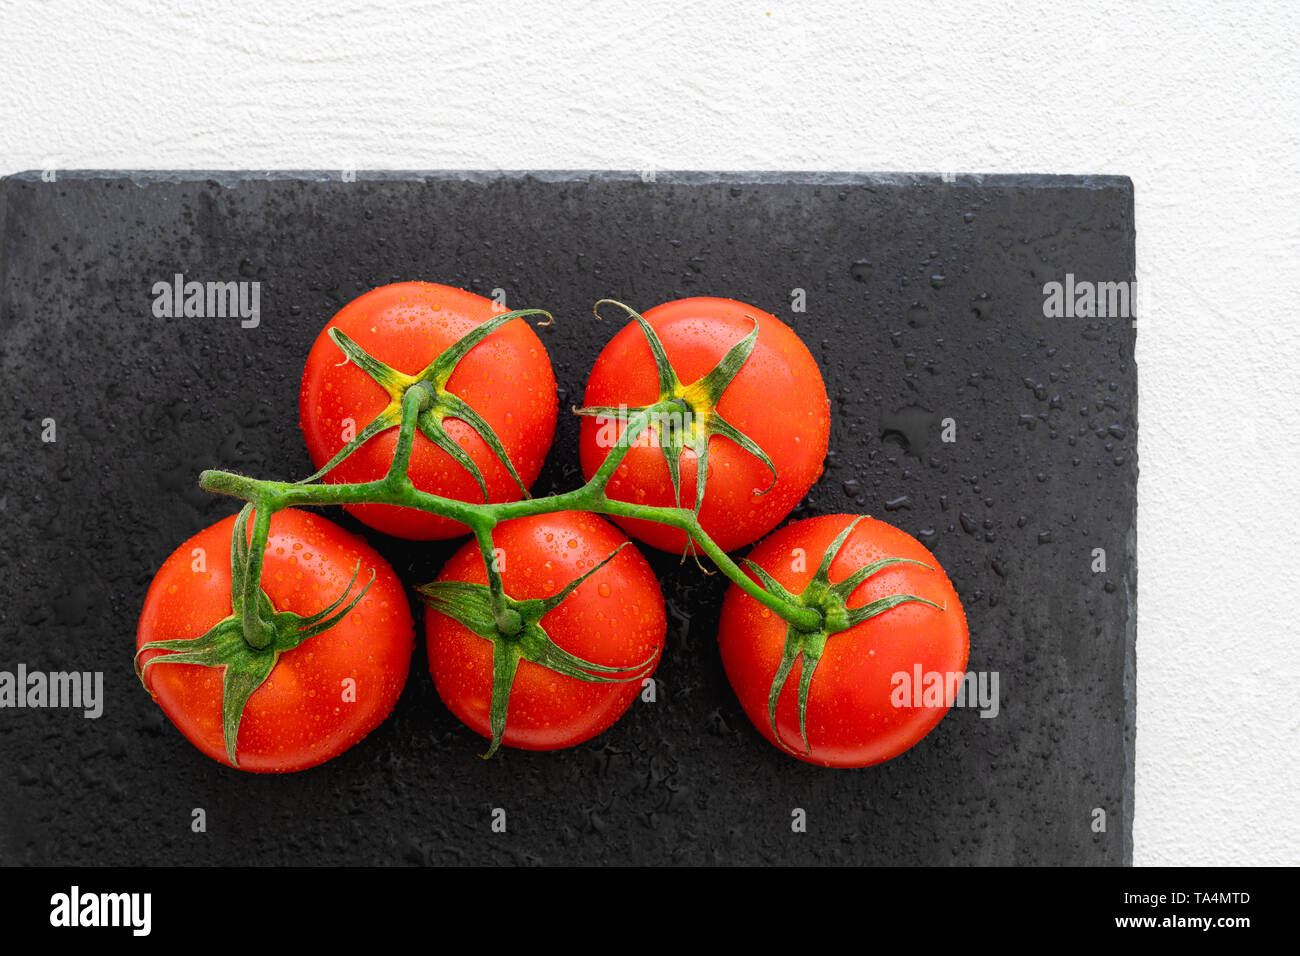 Fresh Red Tomatoes With Drops of Water on a Black Chopping Board in White BackgroundClose Up, Top View - Stock Image